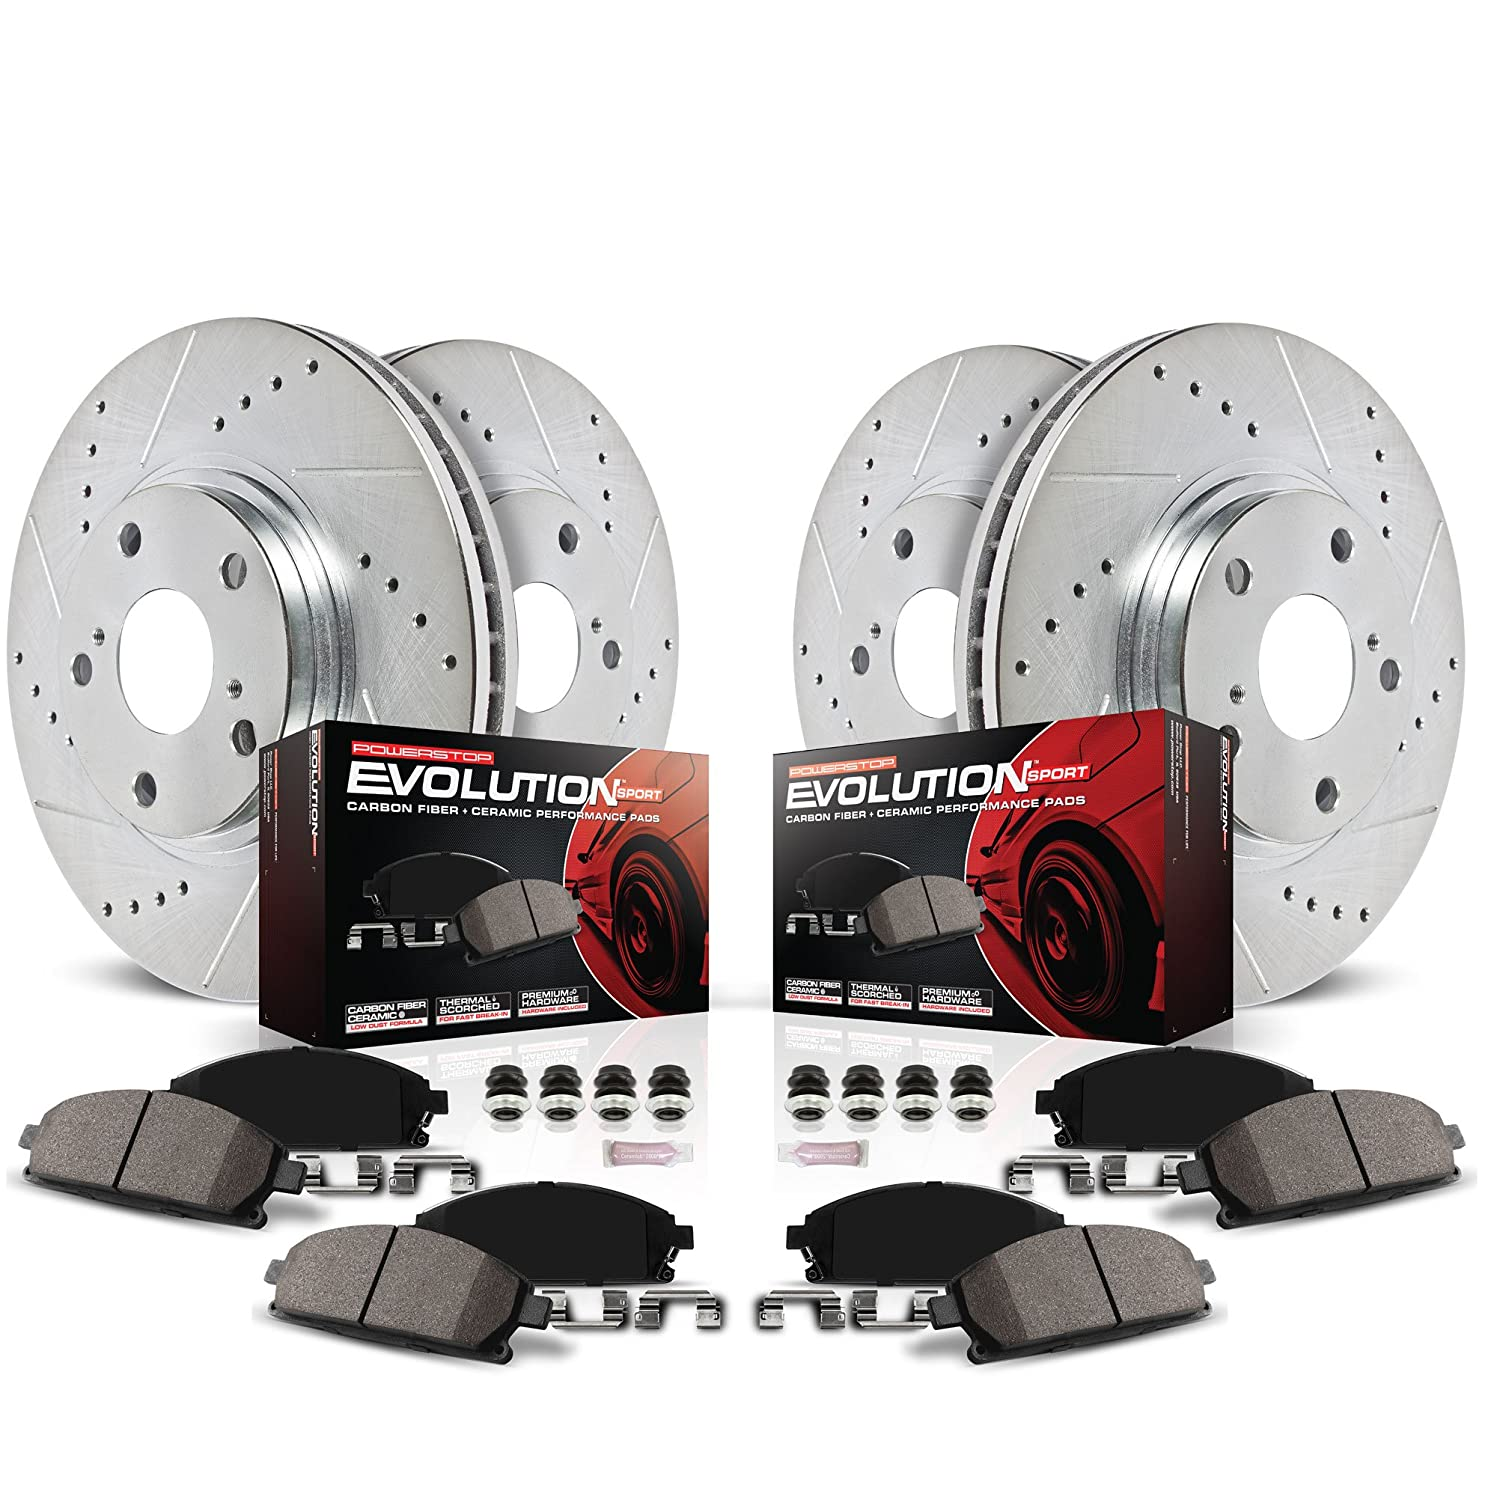 Power Stop K5879 Front and Rear Z23 Evolution Brake Kit with Drilled/Slotted Rotors and Ceramic Brake Pads thgz4870525